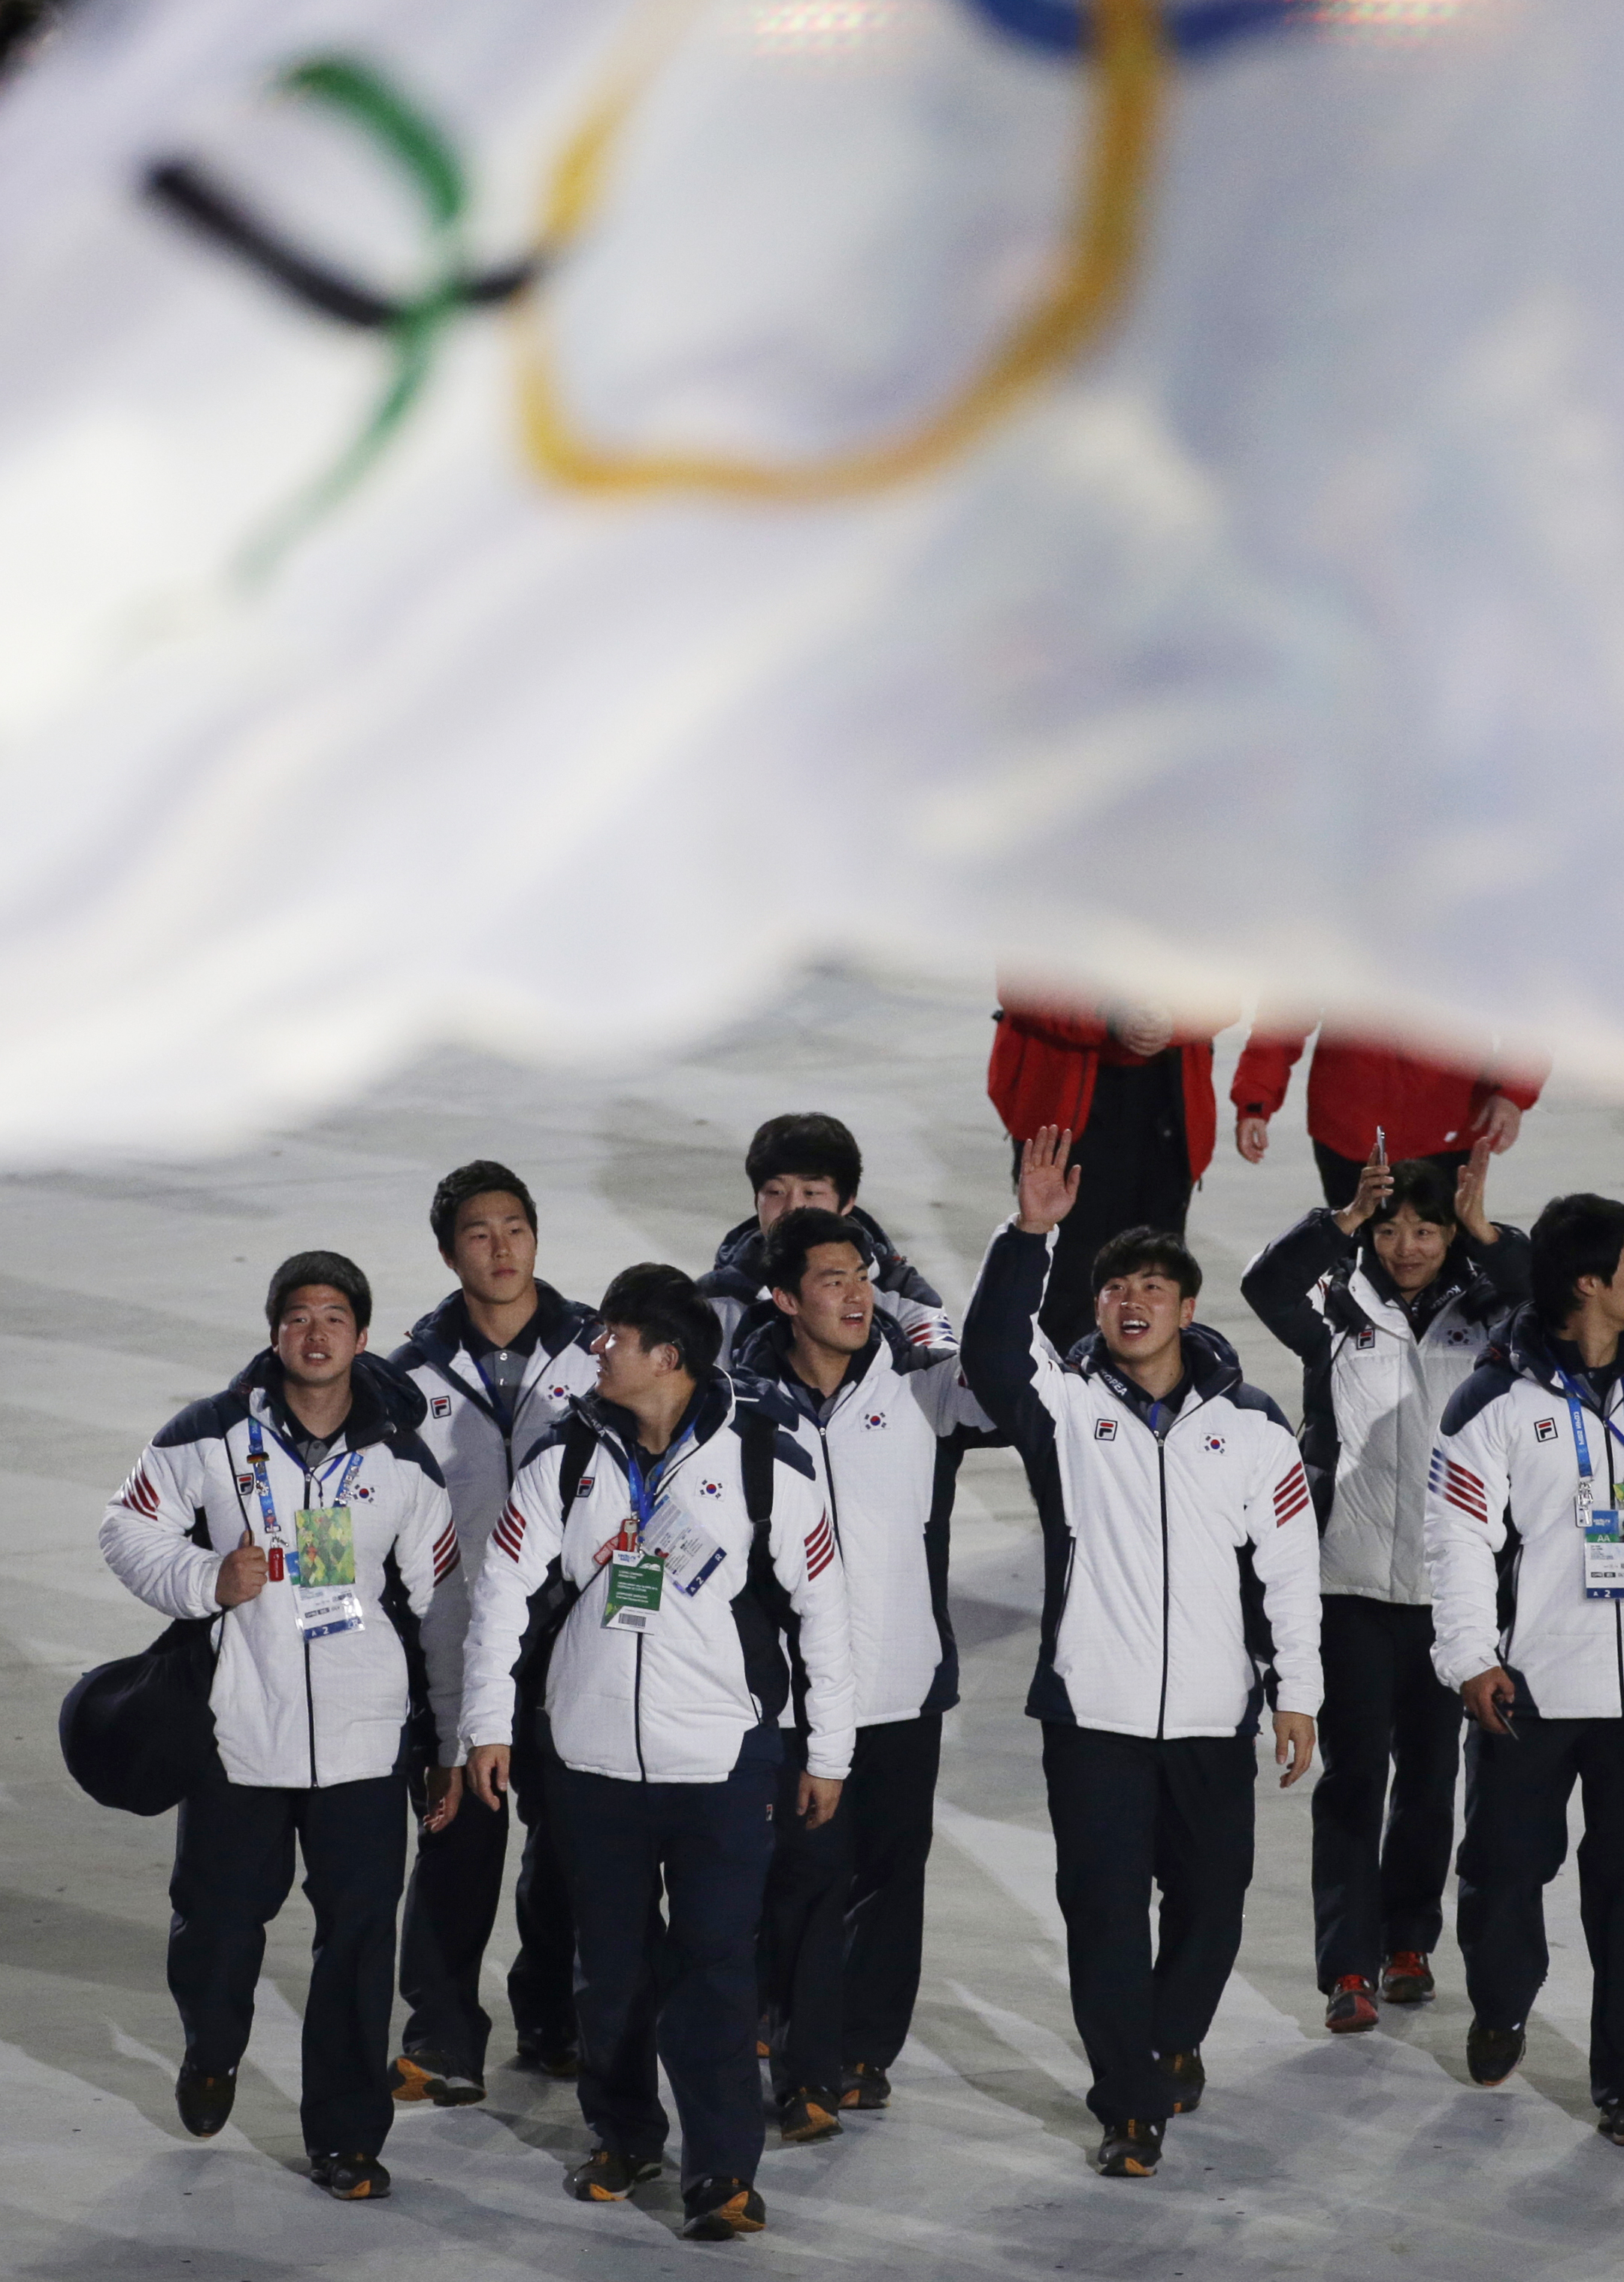 South Korean athletes enter the arena during the closing ceremony of the 2014 Winter Olympics, Sunday, Feb. 23, 2014, in Sochi, Russia. (AP Photo/Gregorio Borgia)